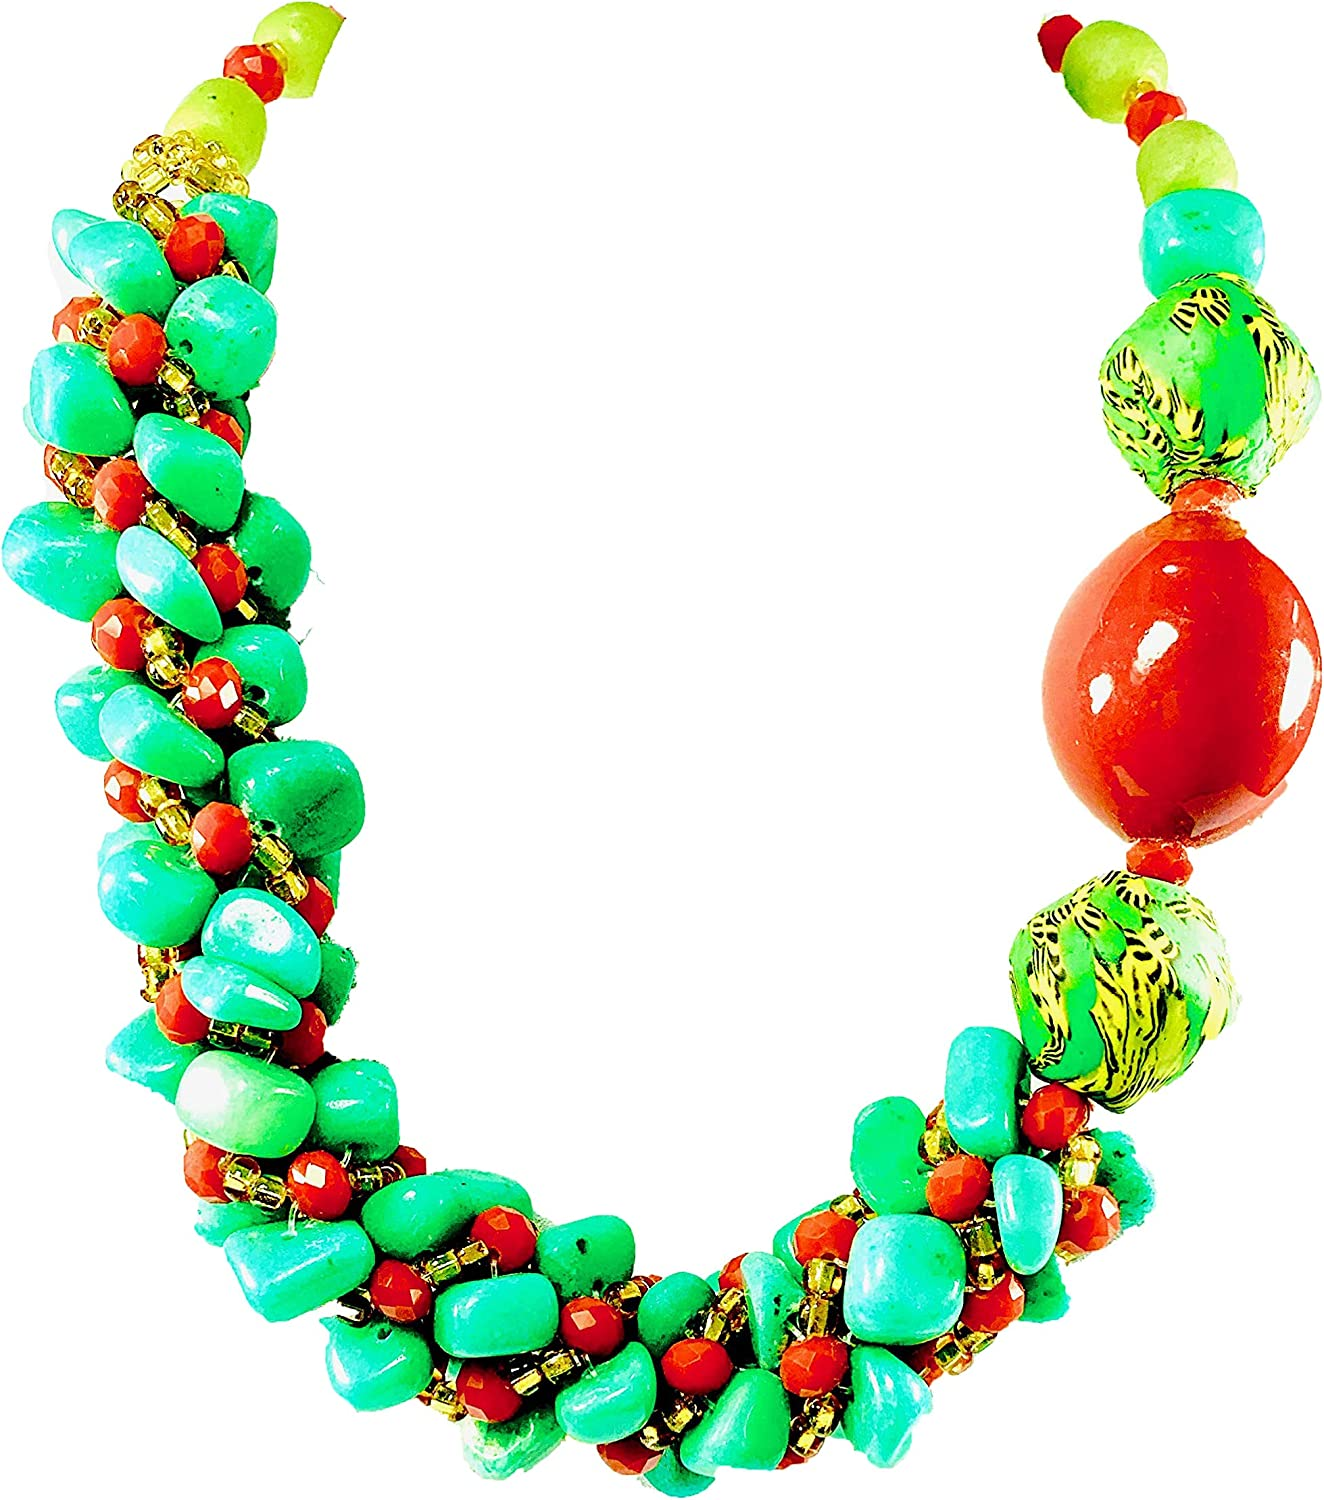 Sophia Dor 16H - Congo- Green Red Glass Bead Necklace Bracelet and Earrings African Hand-Woven Glass Beads, Recycled Glass Material, Elegant Modern Ghanaian Chunky Bold Jewelry Sets